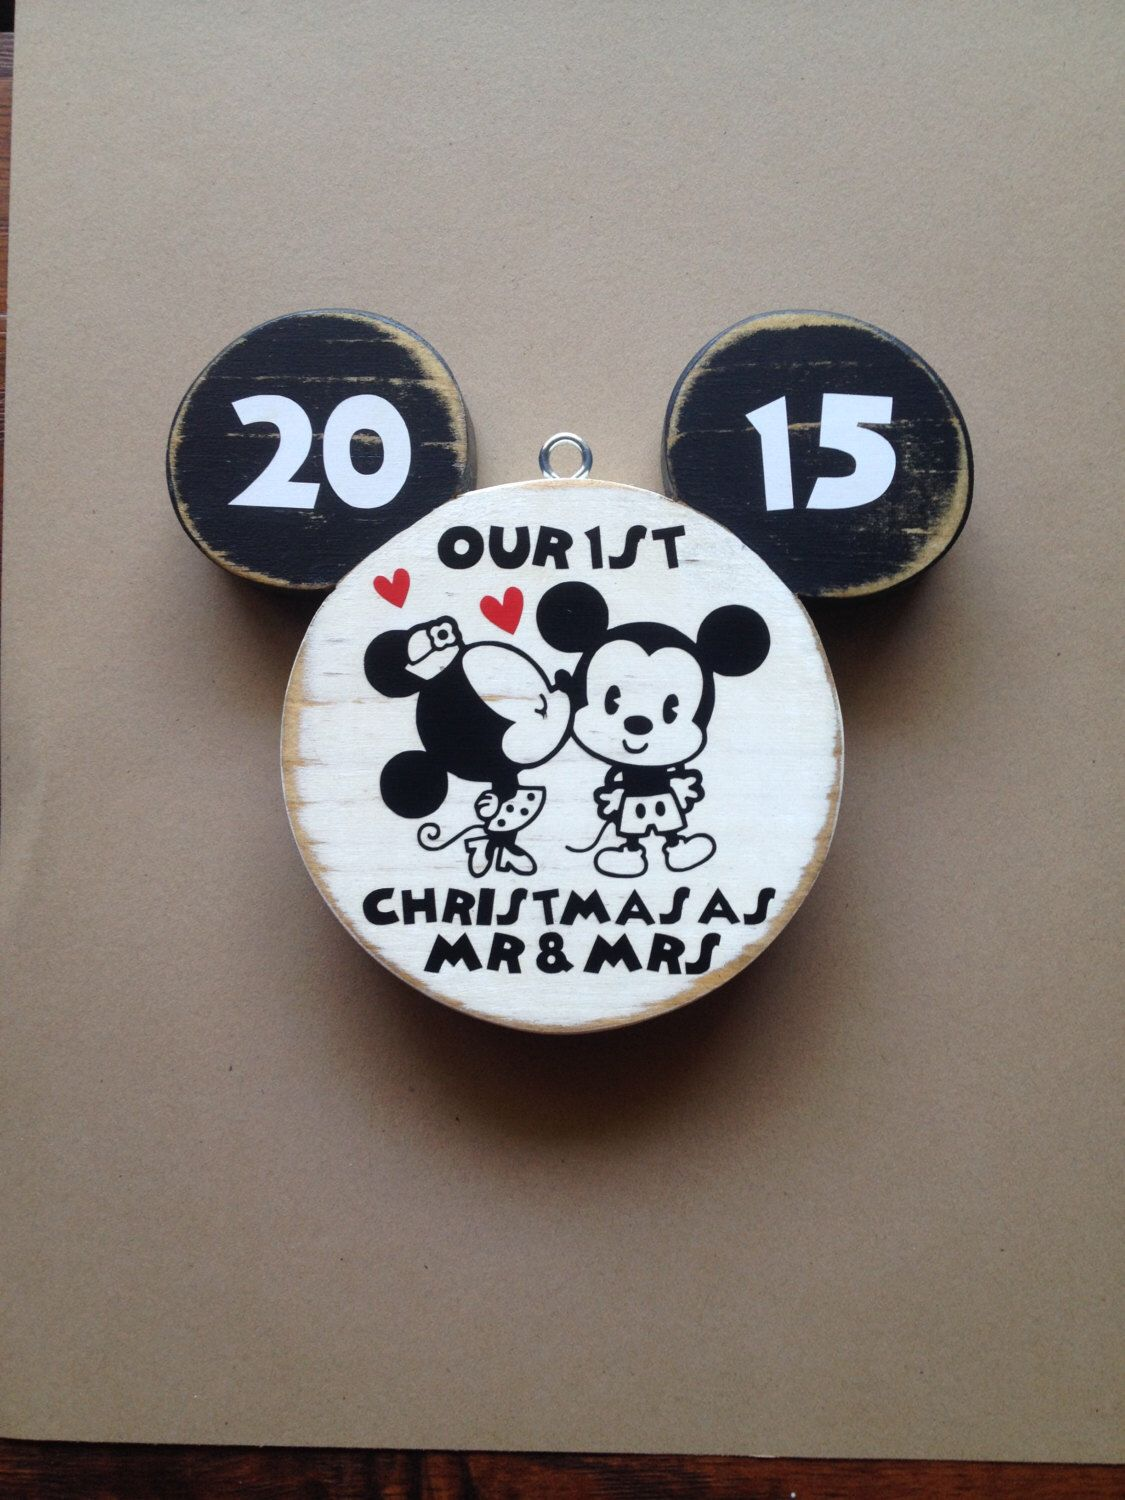 Disney Ornament  First Christmas Ornament Married  Just Married  Mr And  Mrs  Mickey Mouse  Disney Wood  Disney Wedding